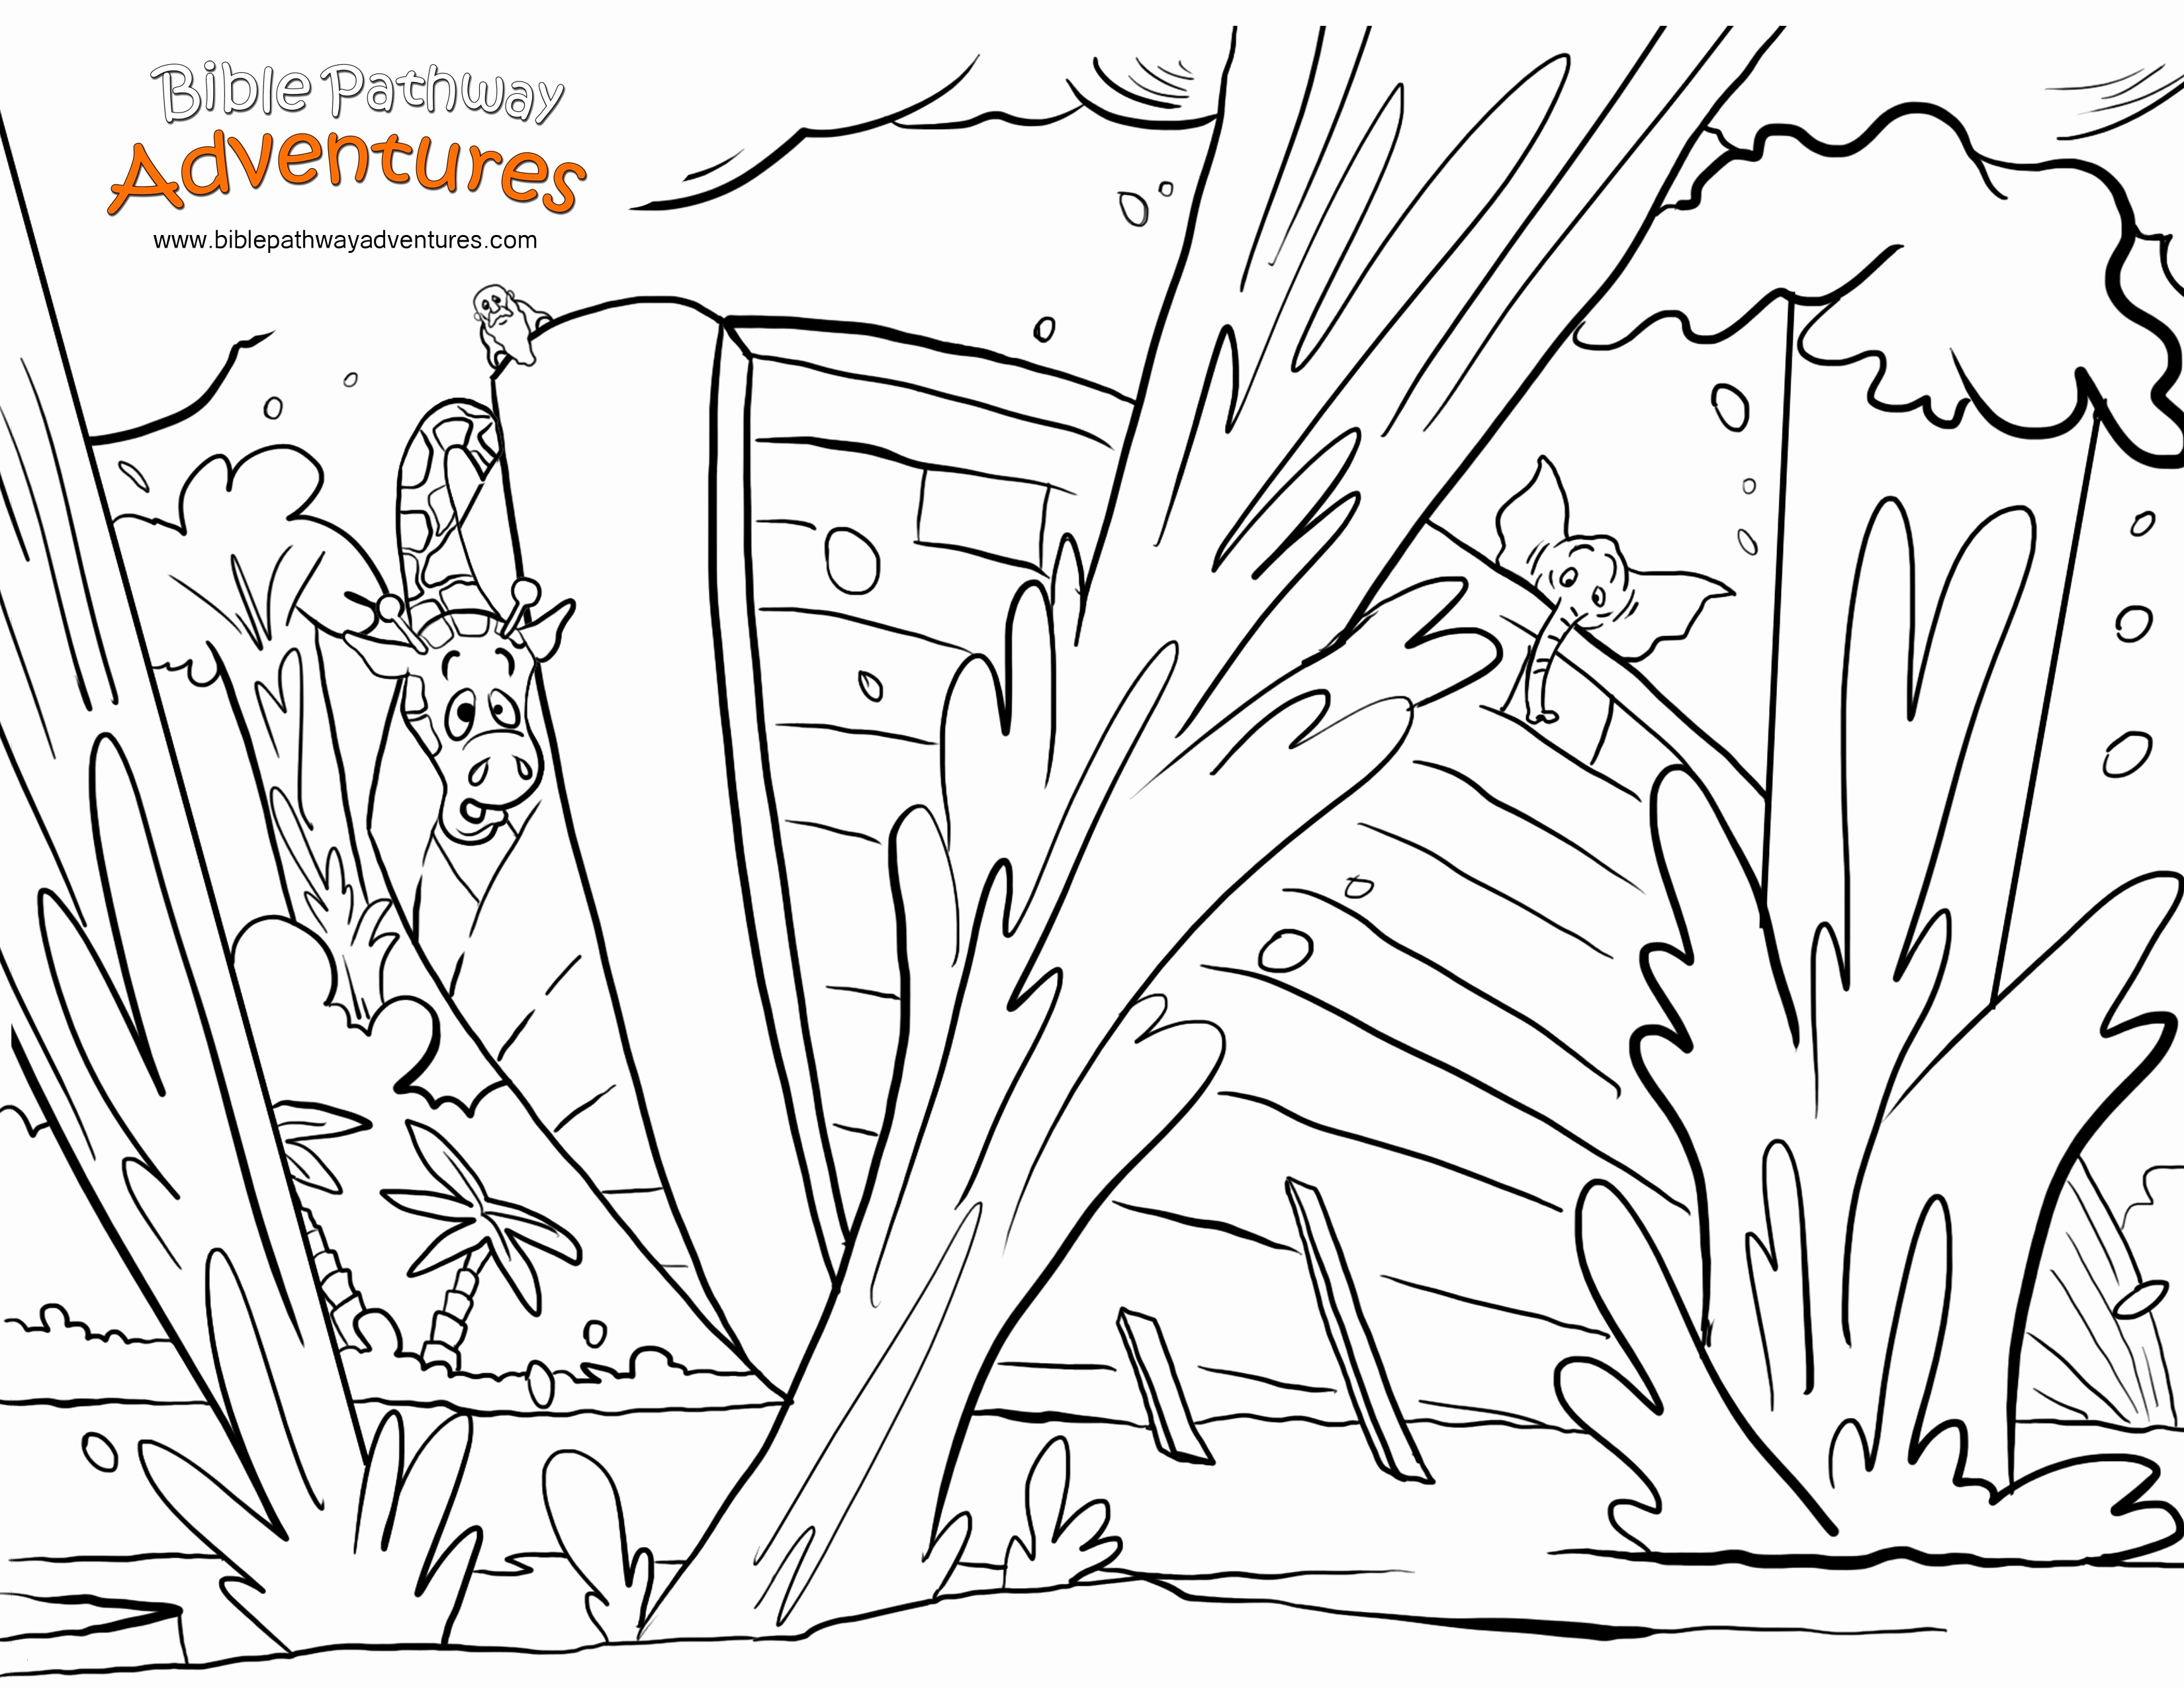 free noah ark coloring pages Download-Coloring Pages for Sunday School New Free Coloring Pages for Sunday School Fabulous Free Bible Coloring 17-h